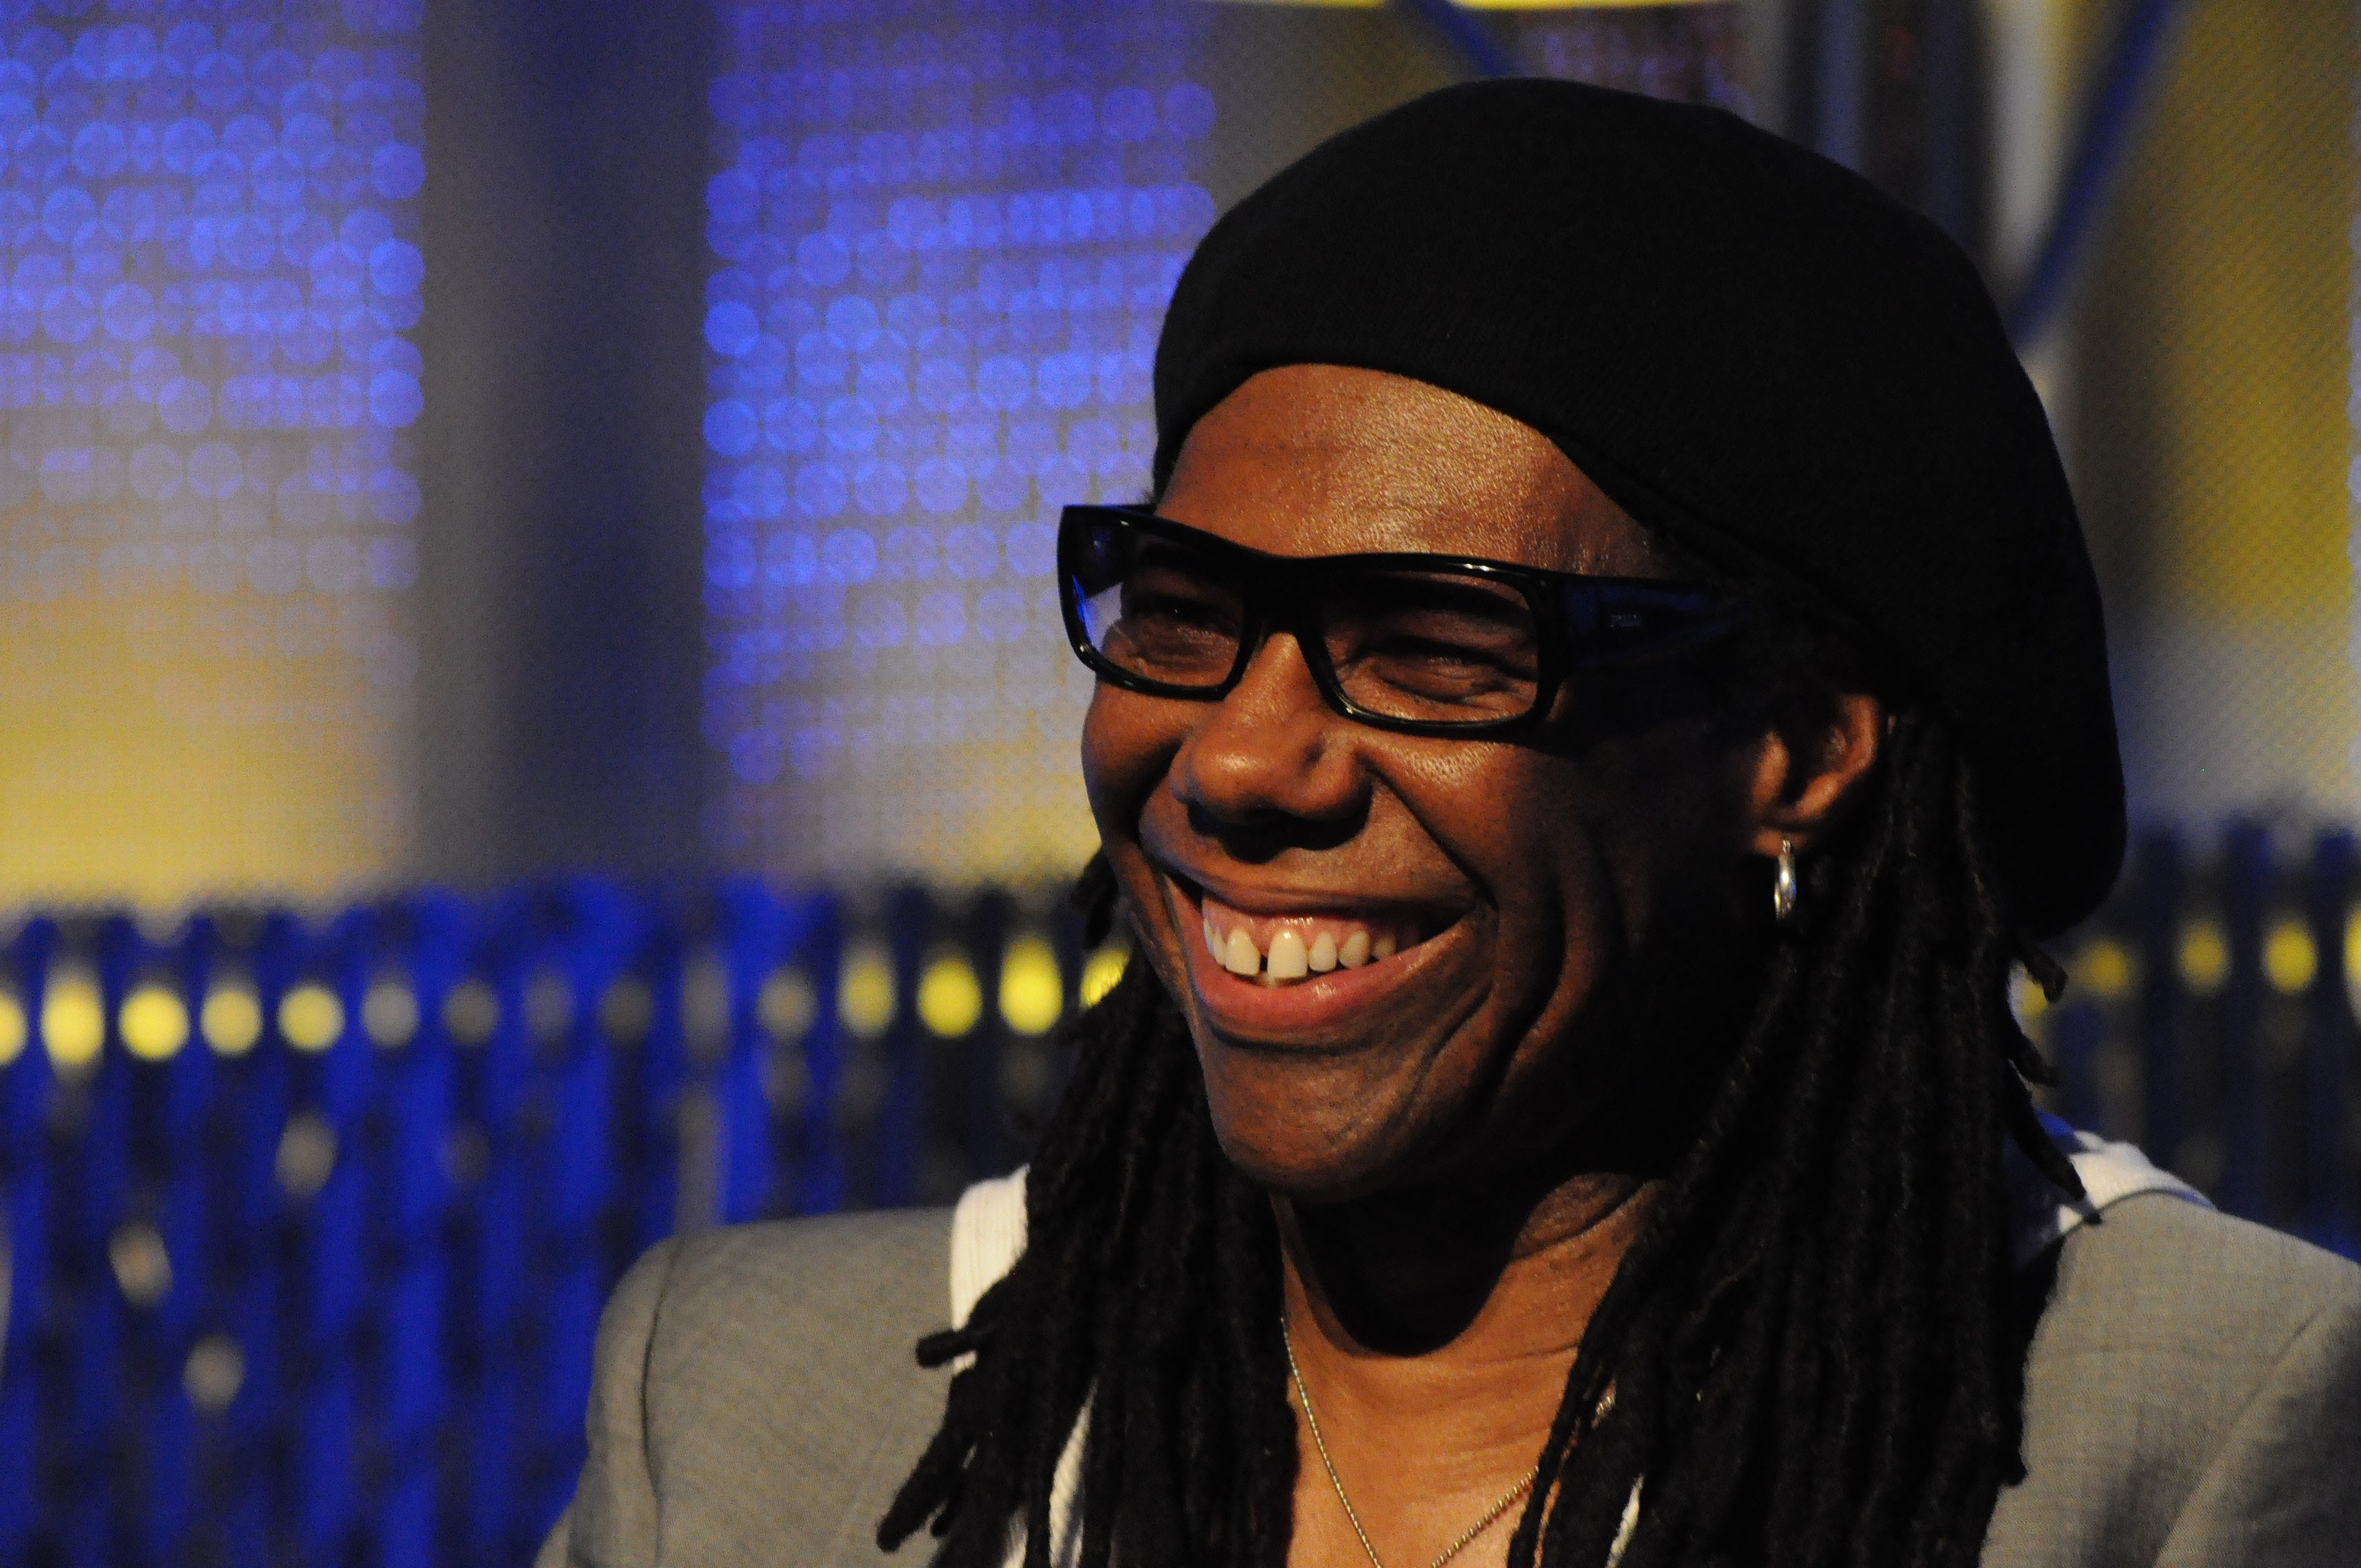 Nile Rodgers on the keynote panel of the 2010 Pop Conference, EMPSFM, Seattle, Washington. | Photo By Joe Mabel, CC BY-SA 3.0, Wikimedia Commons Images